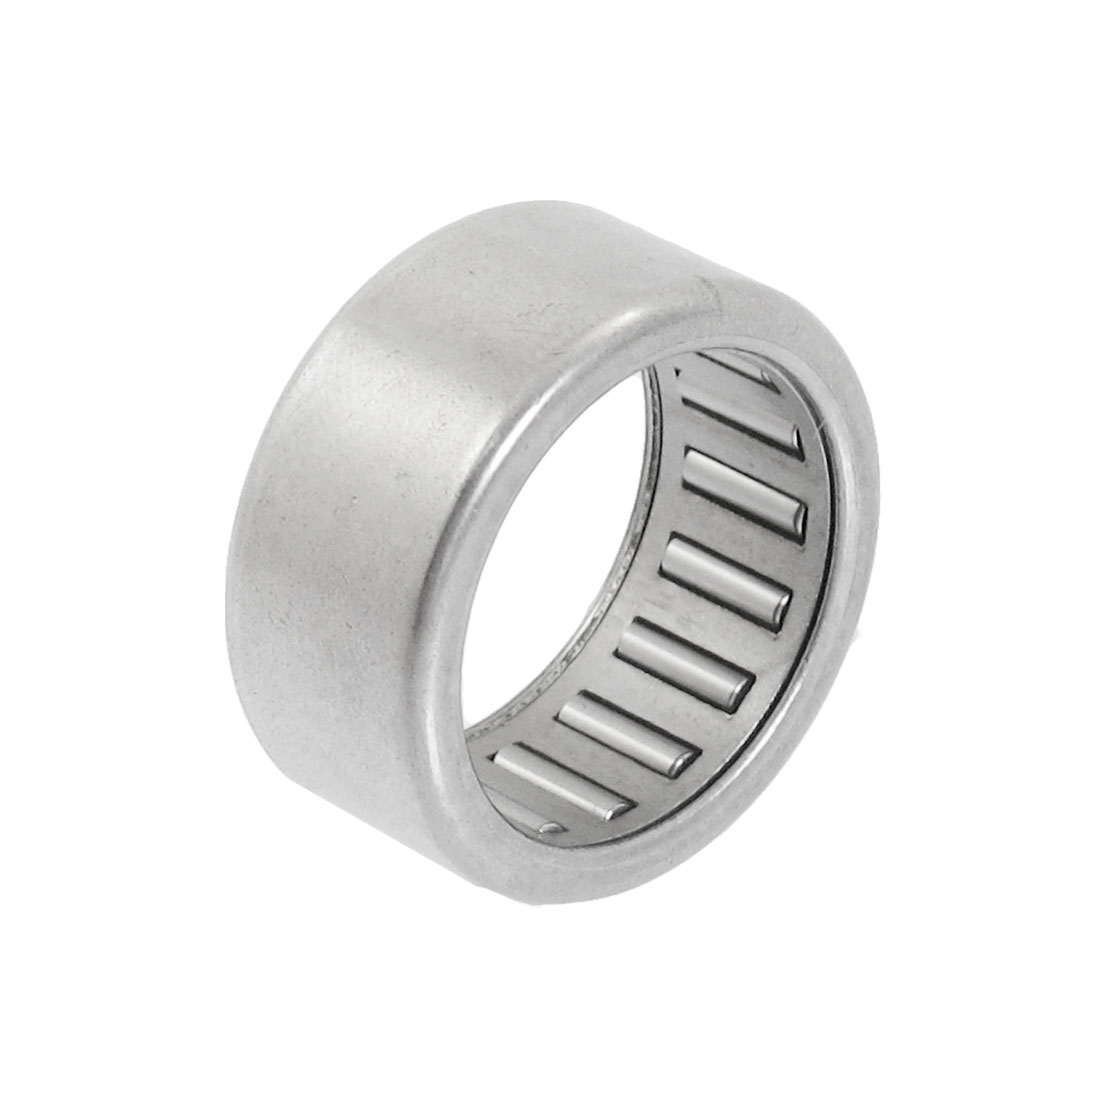 HK202612 20mm x 26mm x 12mm Drawn Cup Caged Drawn Cup Needle Roller Bearing